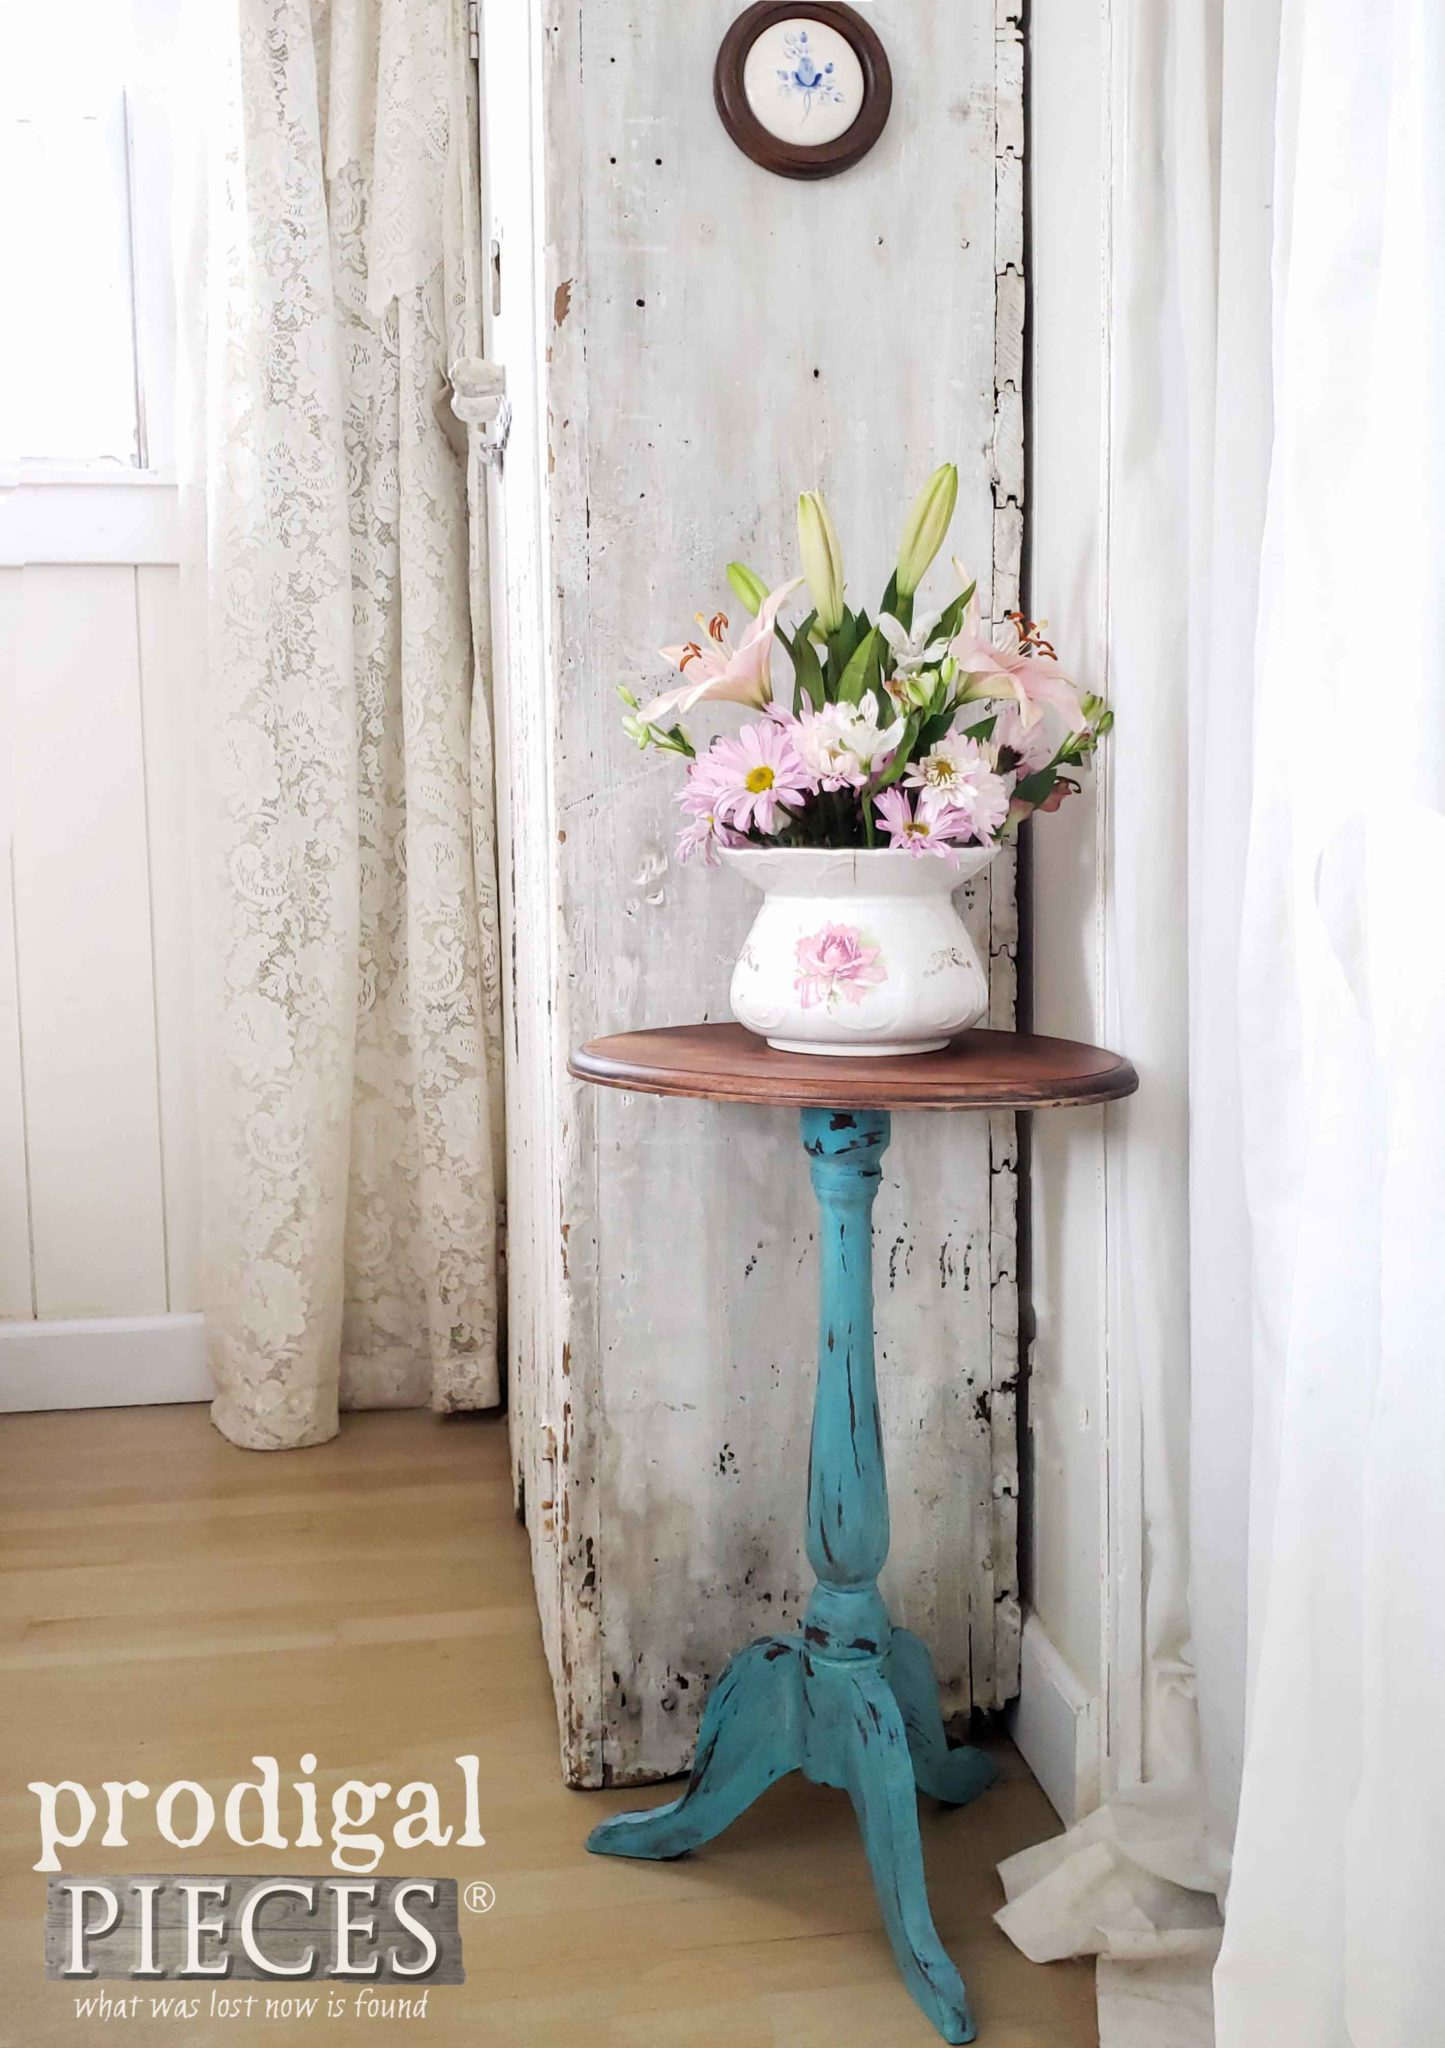 Vintage Farmhouse Accent Table in Aqua by Larissa of Prodigal Pieces | prodigalpieces.com #prodigalpieces #home #furniture #diy #farmhouse #homedecor #homedecorideas